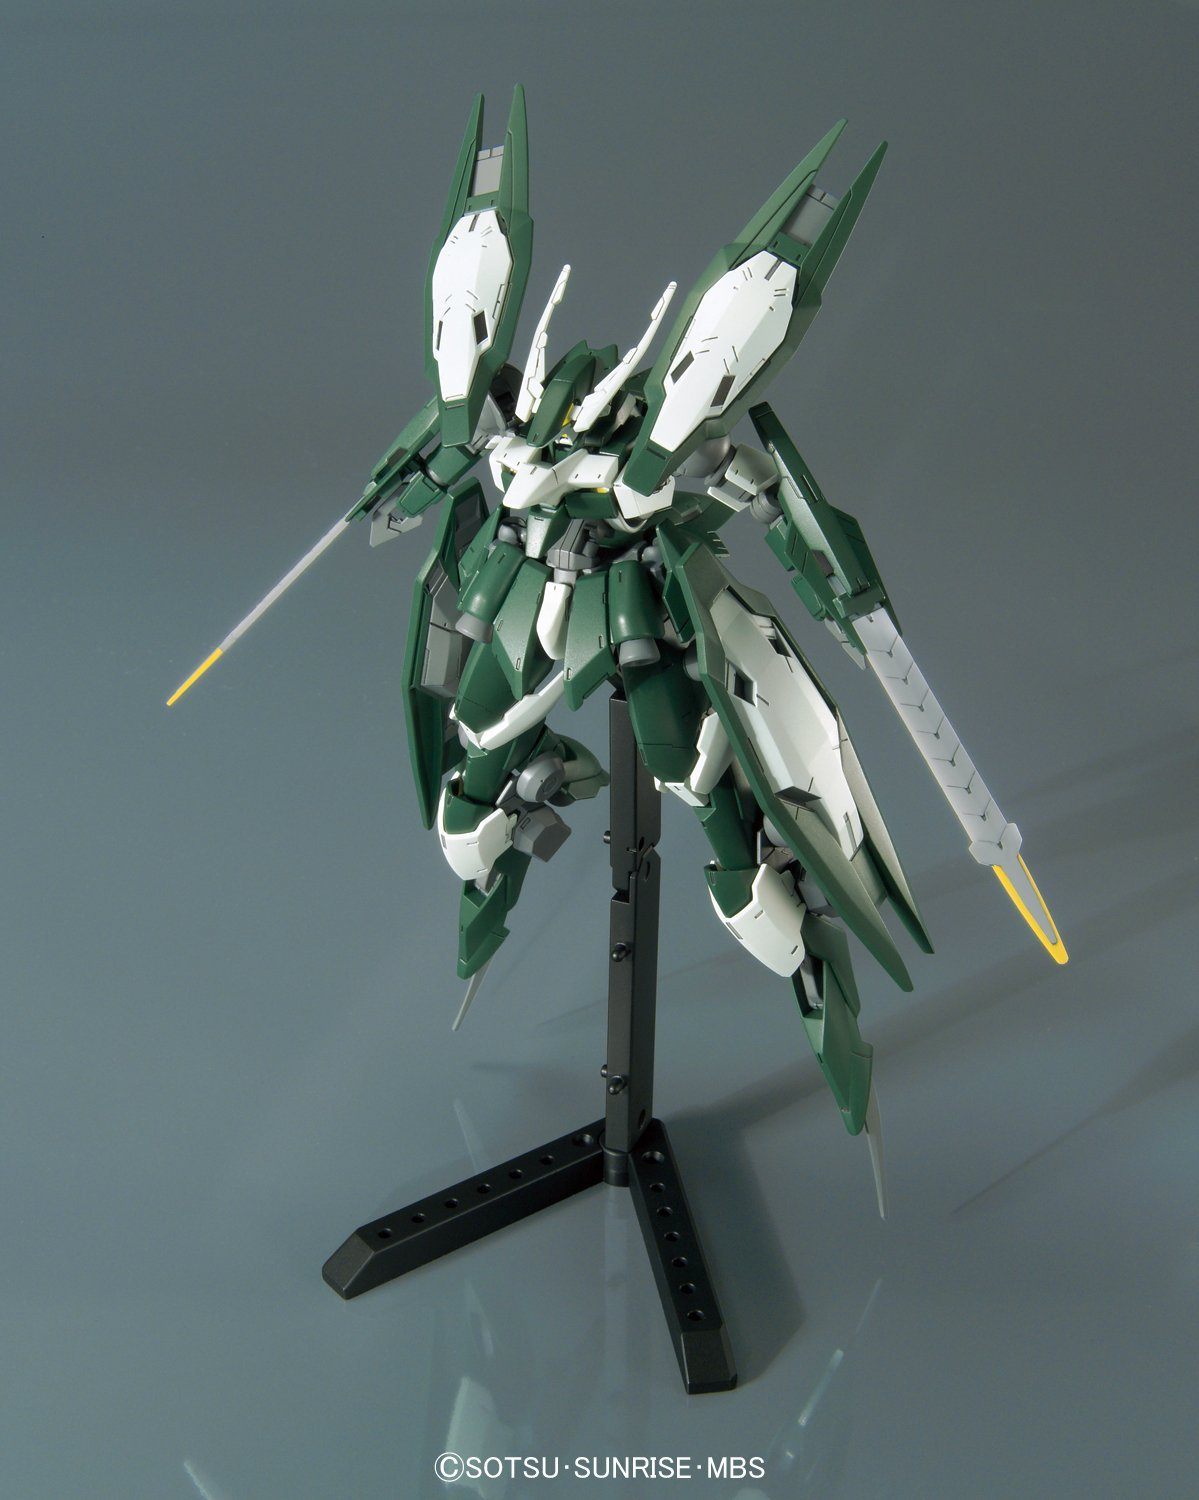 HG 1/144 Reginlaze Julia - Release Info, Box art and Official Images